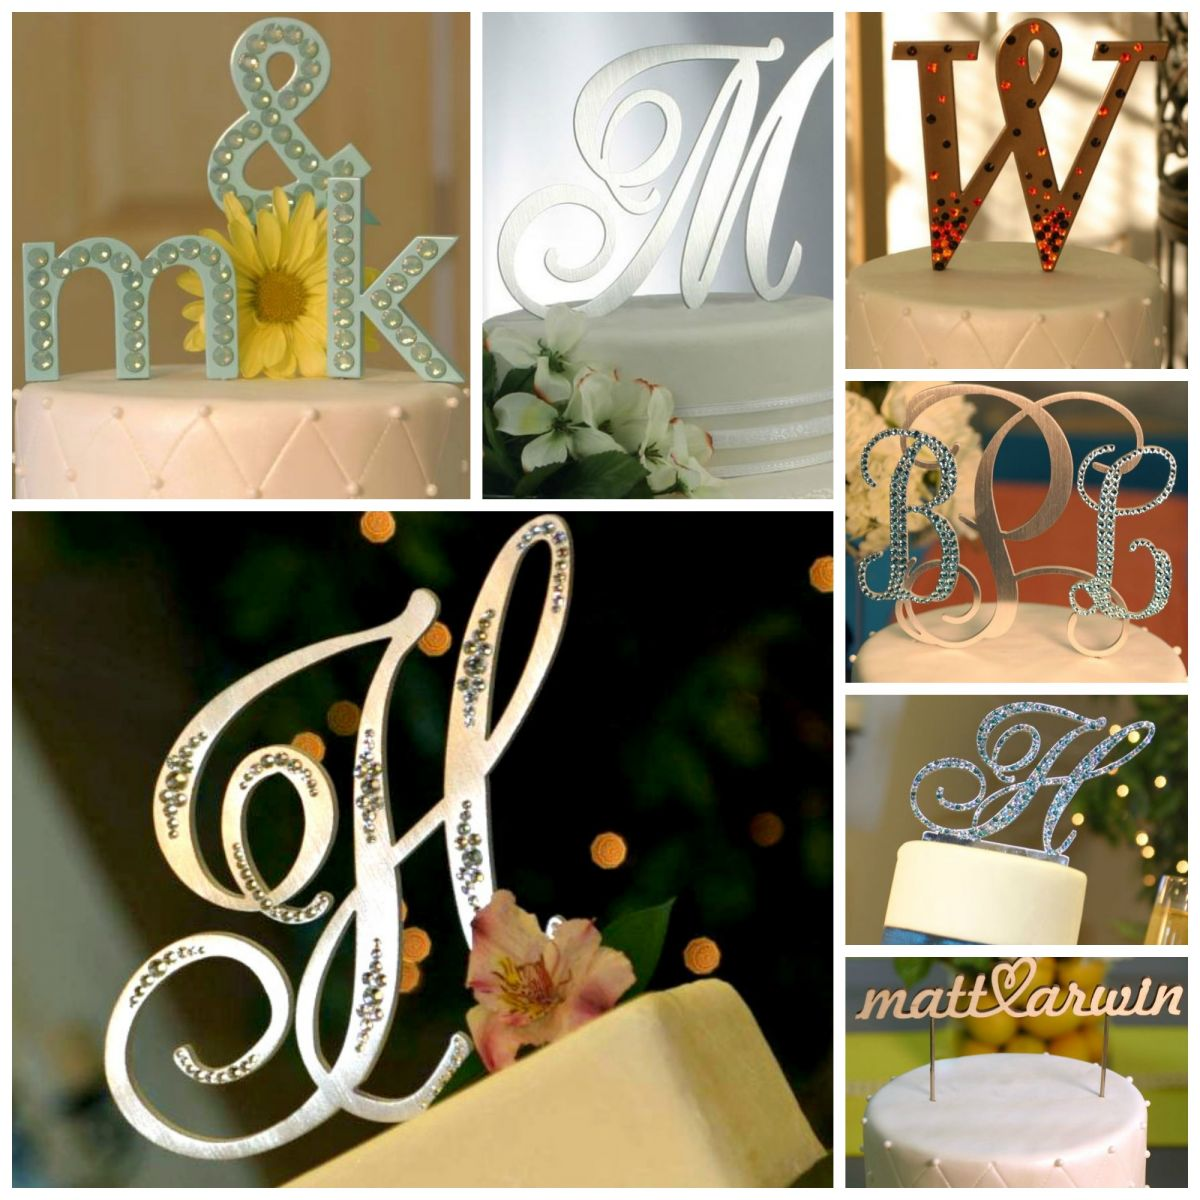 wedding cuts customized cake toppers provided by wedding cuts reviewed ...